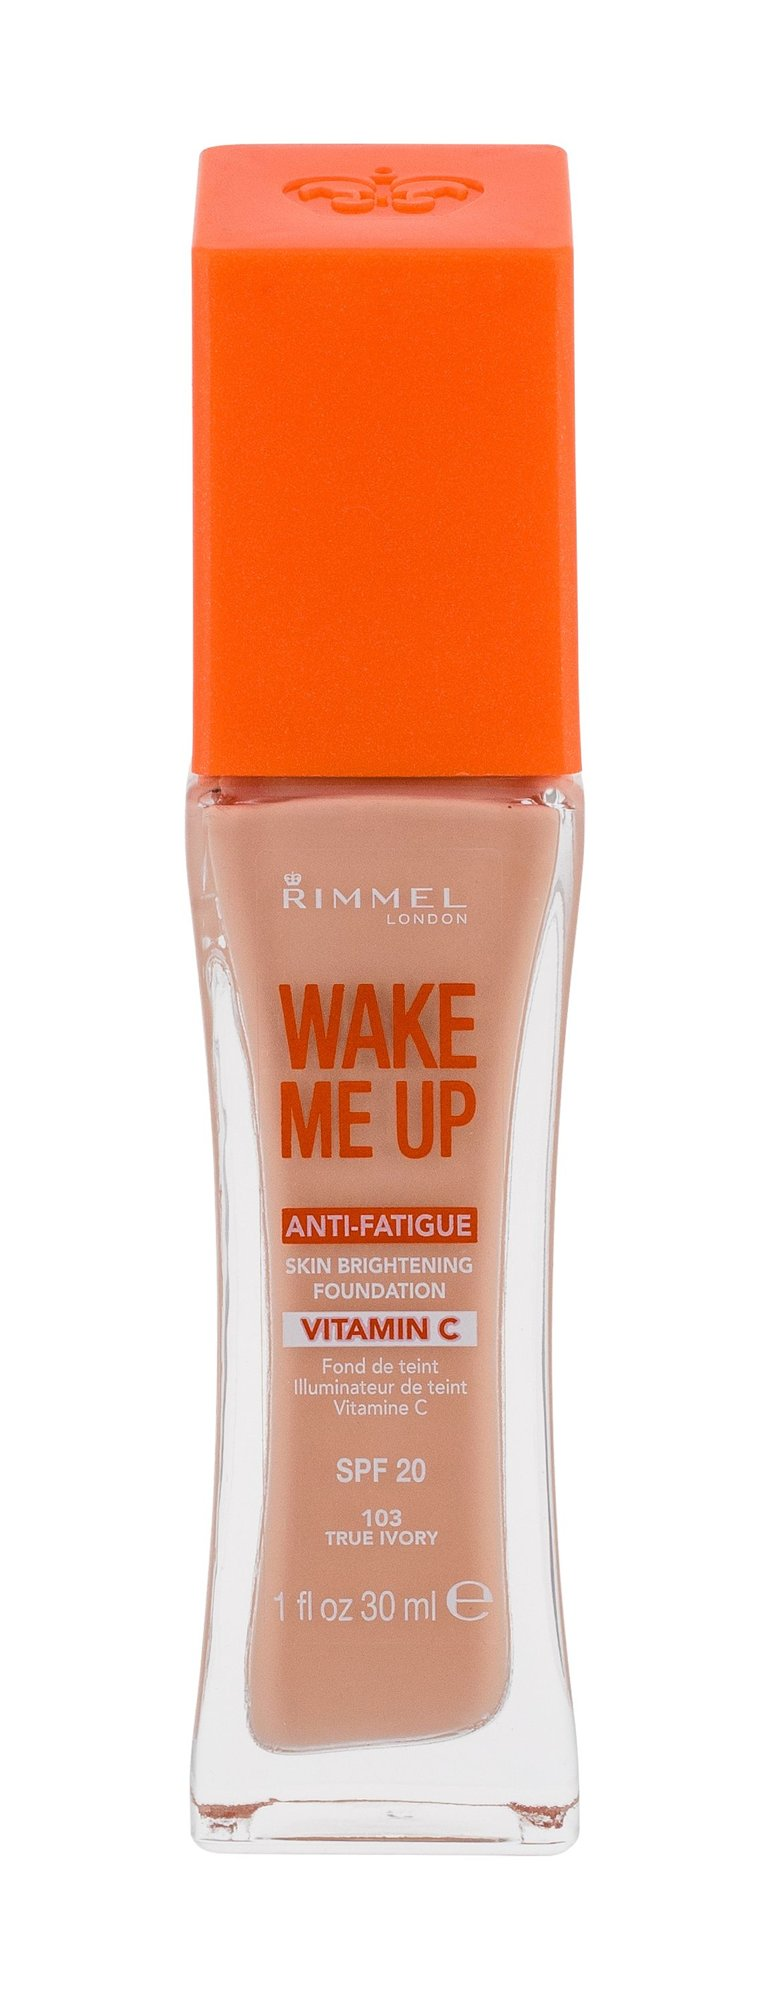 Rimmel London Wake Me Up Cosmetic 30ml 103 True Ivory